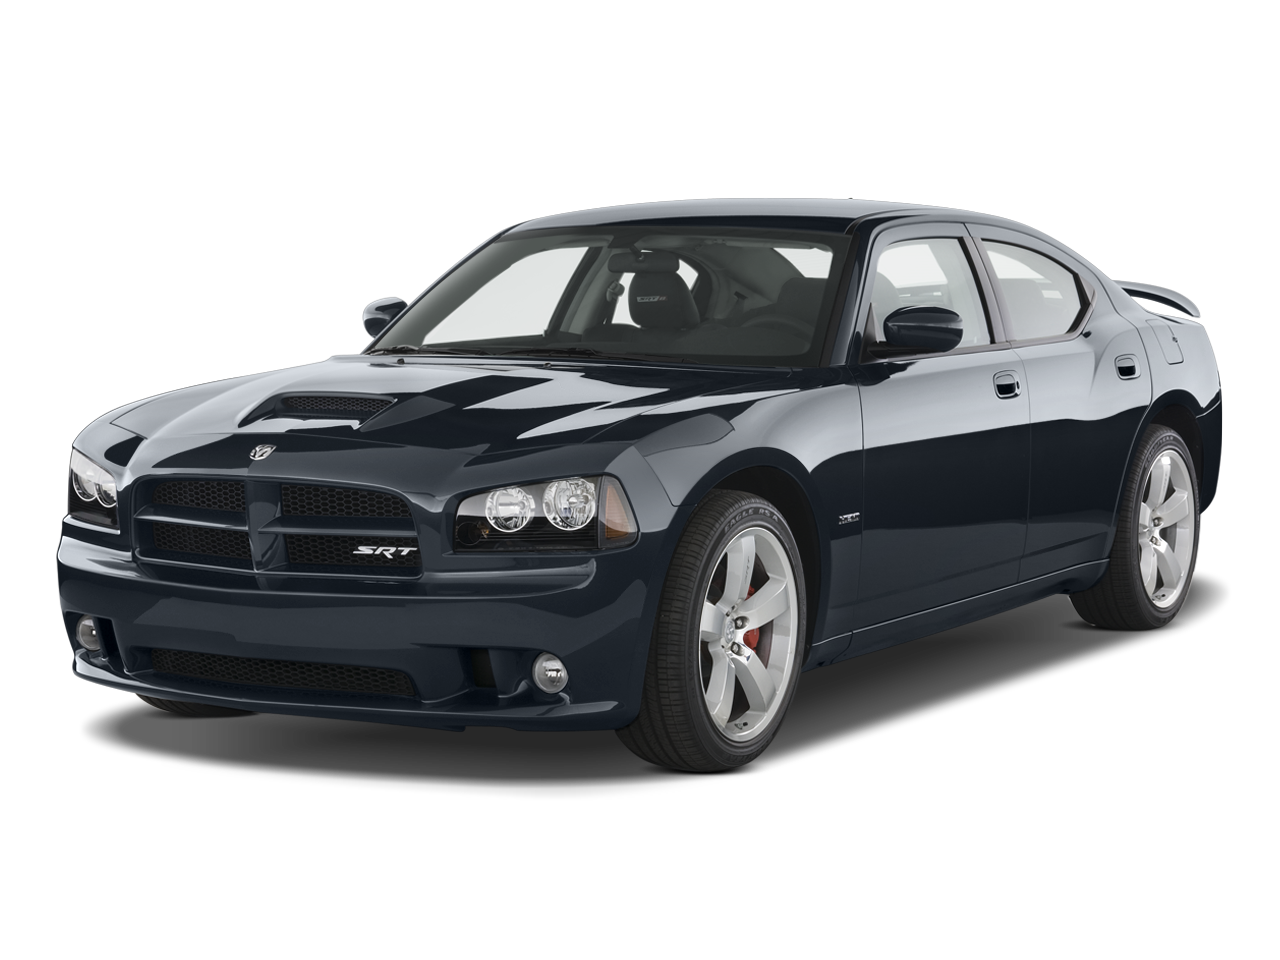 2009 dodge charger srt8 dodge sport coupe review automobile magazine. Black Bedroom Furniture Sets. Home Design Ideas